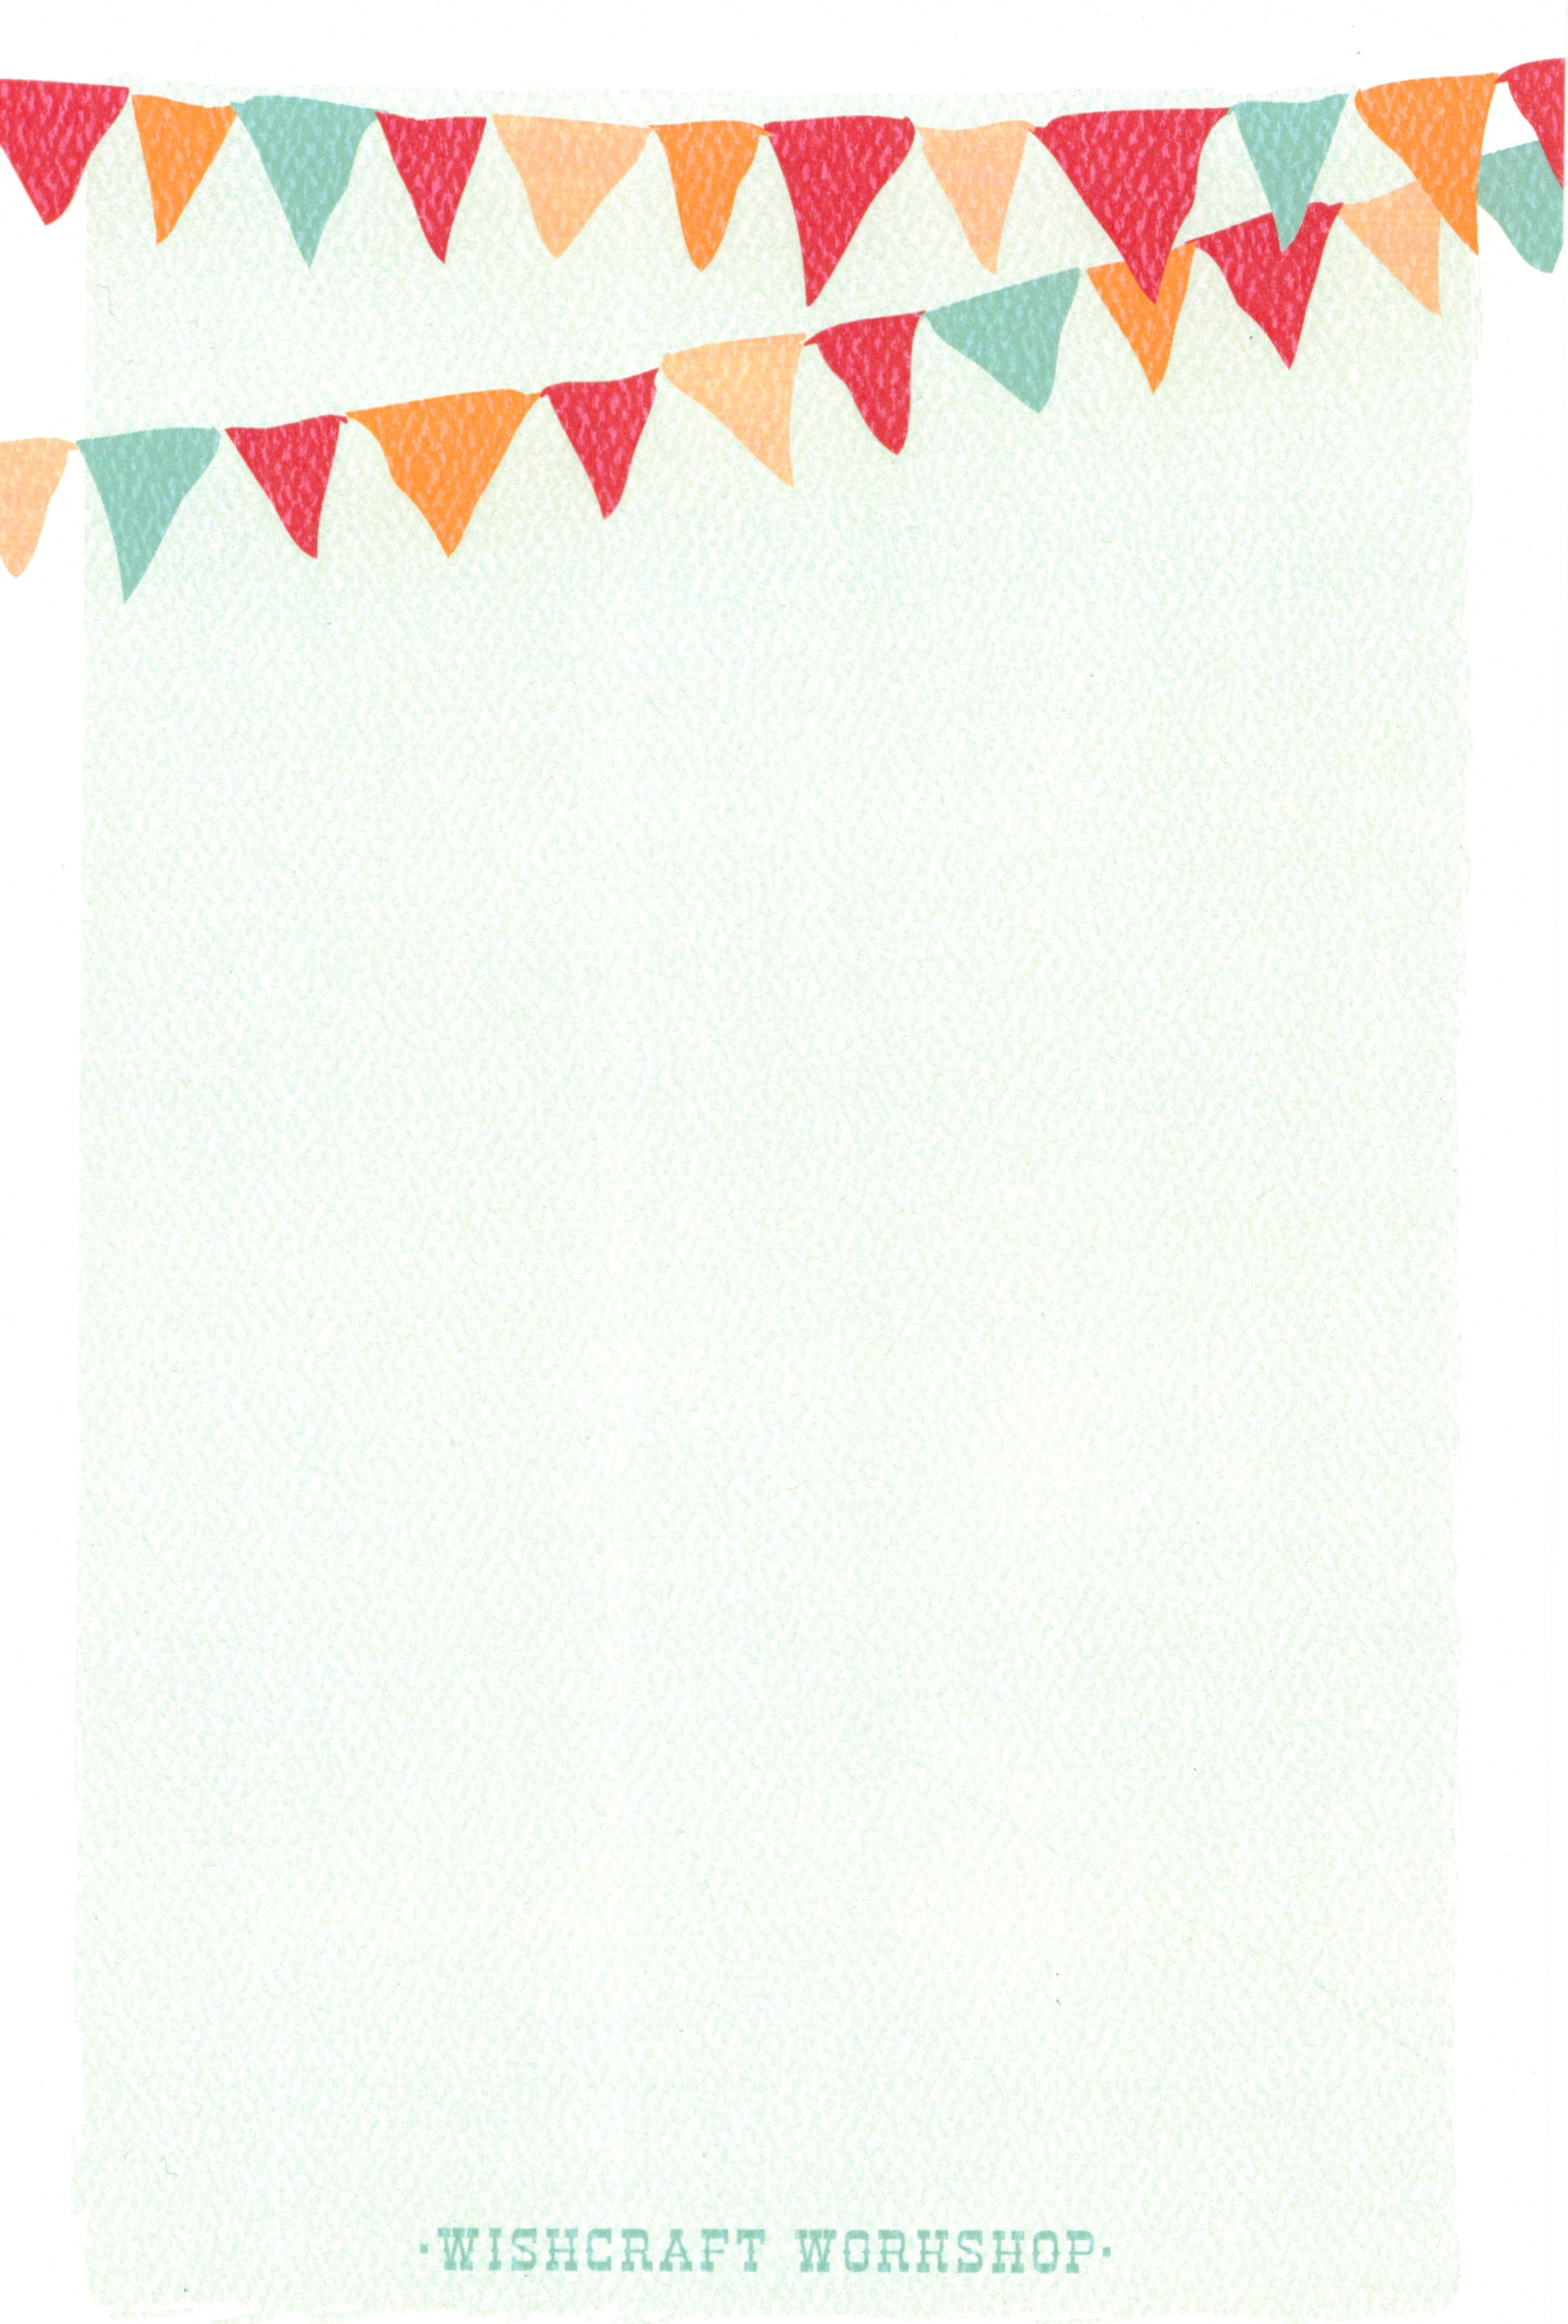 blank birthday invitation templates ; blank-party-invitations-which-can-be-used-as-extra-engaging-Party-invitation-design-ideas-181120164